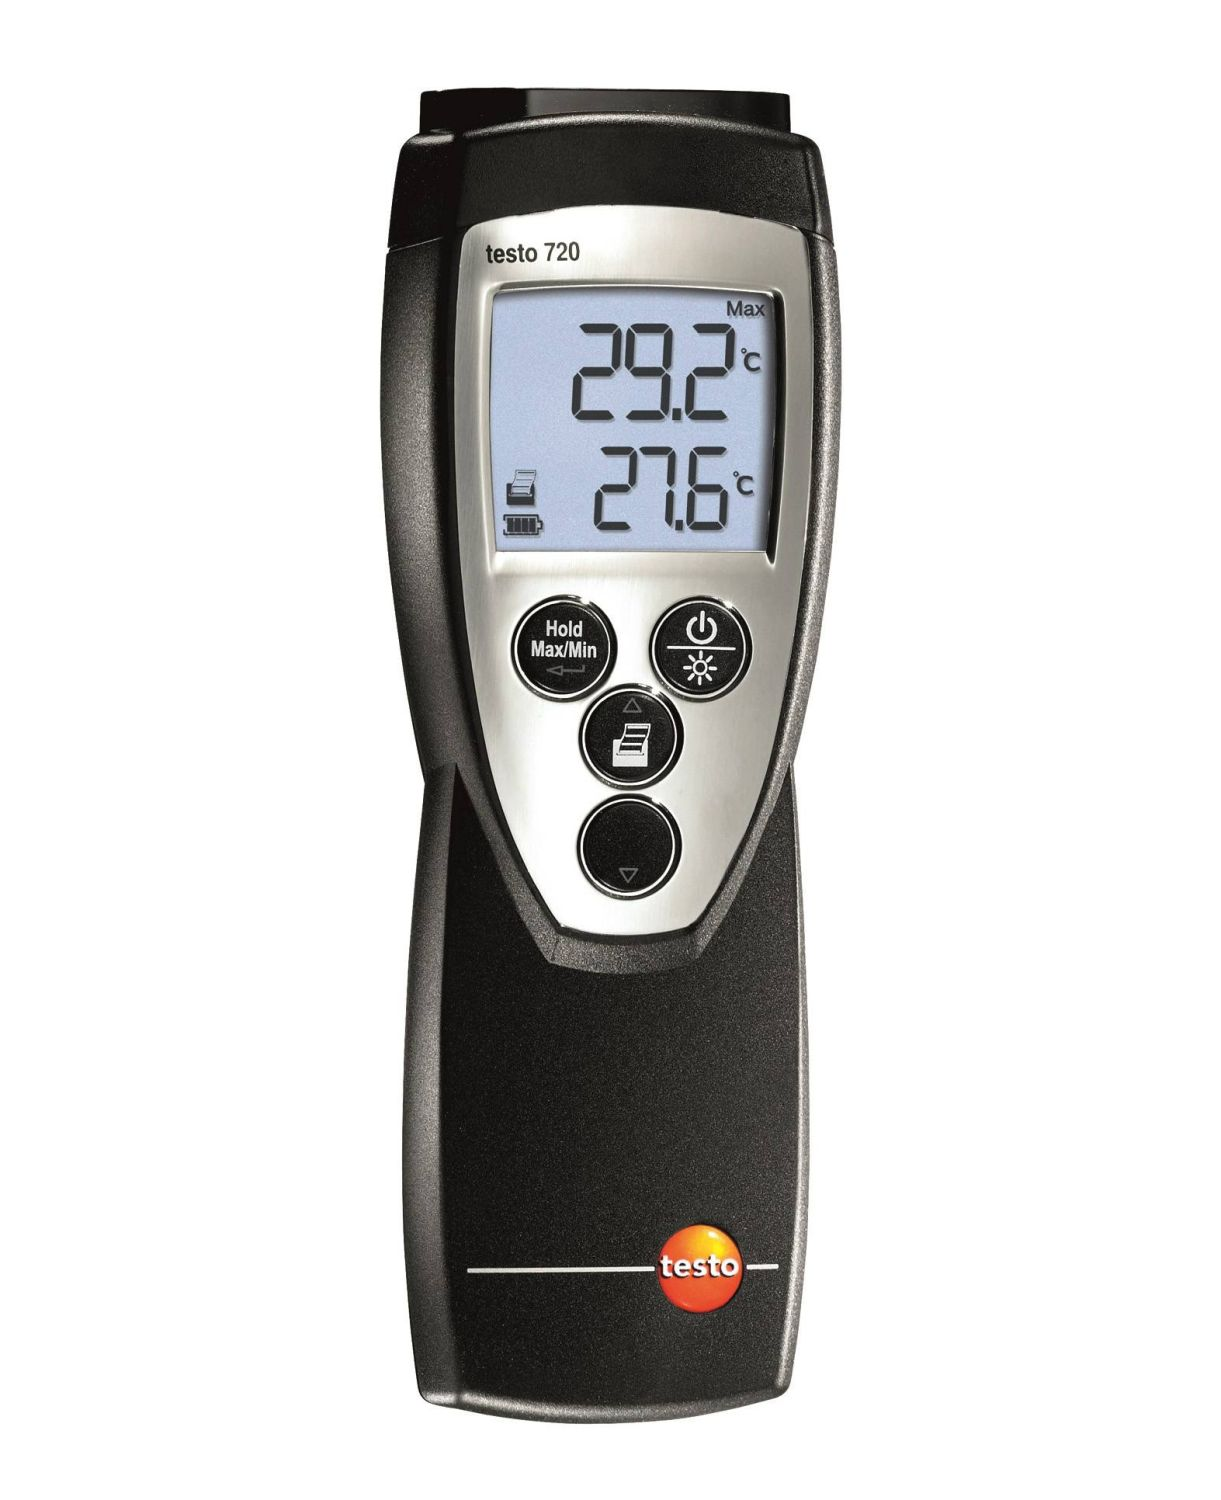 testo 720 temperatuur meetinstrument